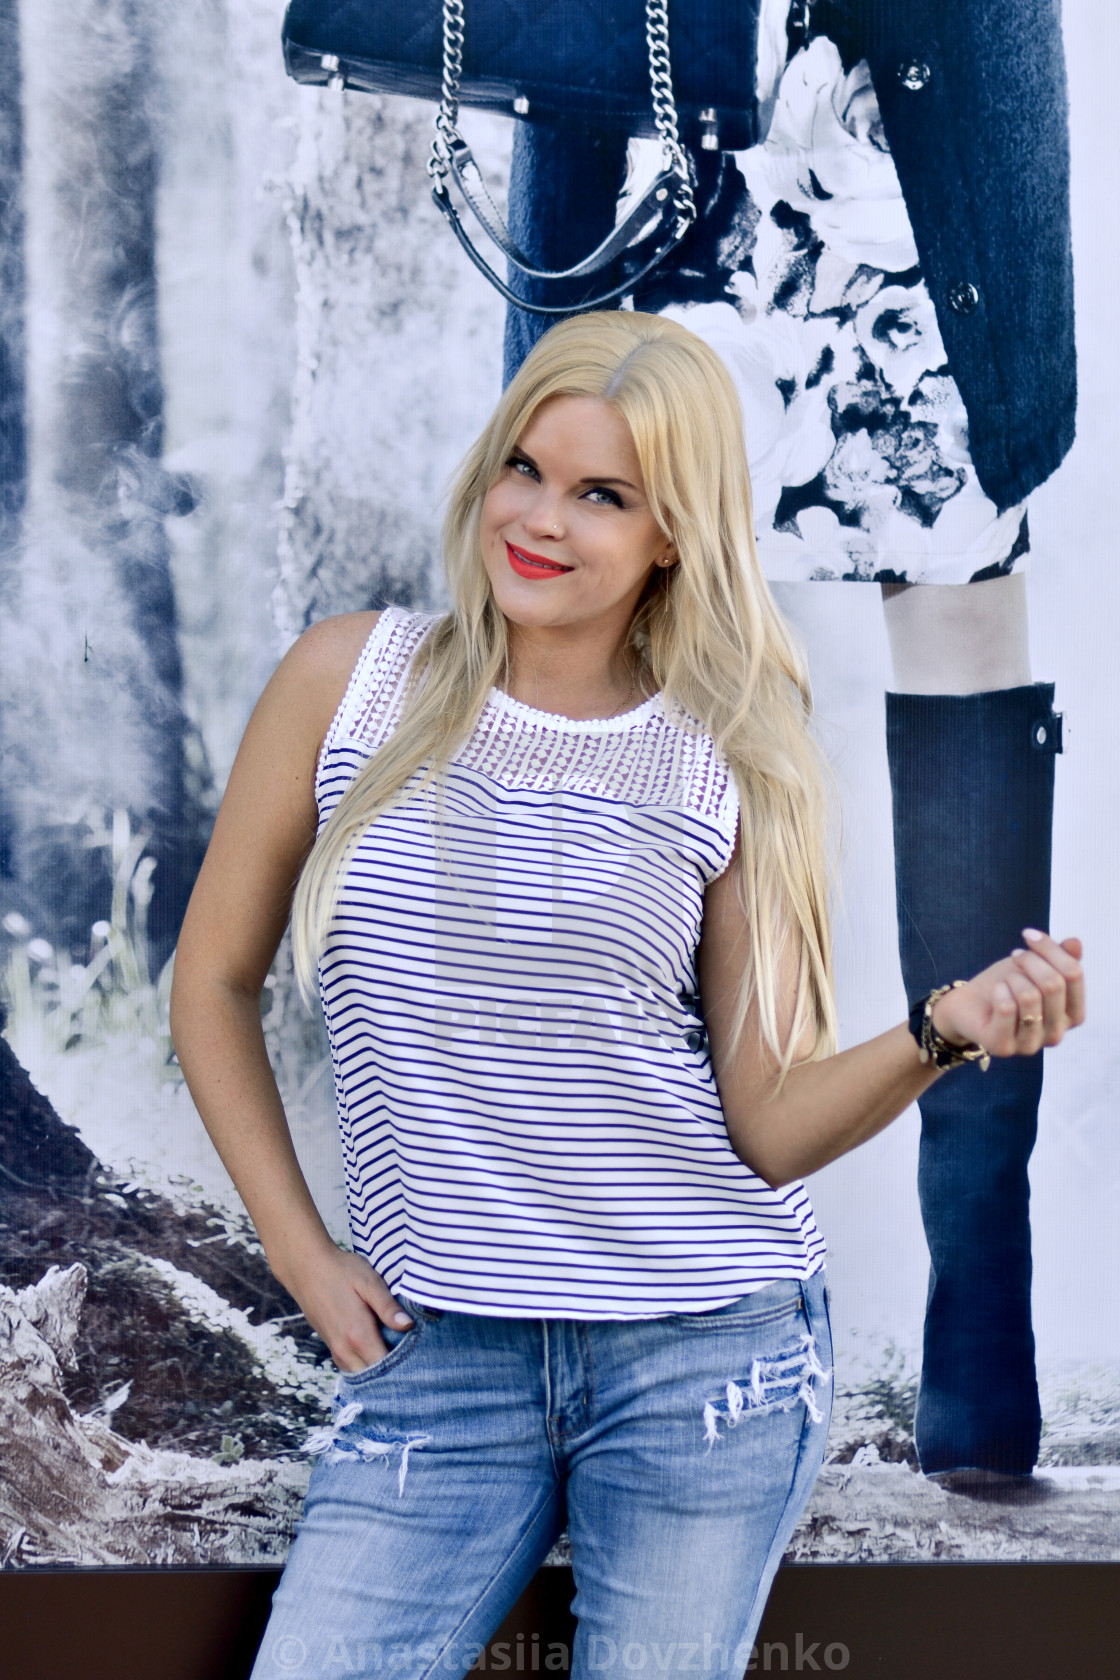 Fashionable Expert In Fashion Industry And World Posing Blonde Beautiful Attractive Model On The Colorful Wallpaper Background Happy Cheerful Smiling Pleasant Looking Blonde Girl With Red Lips On Modern Background License Download Or Print For